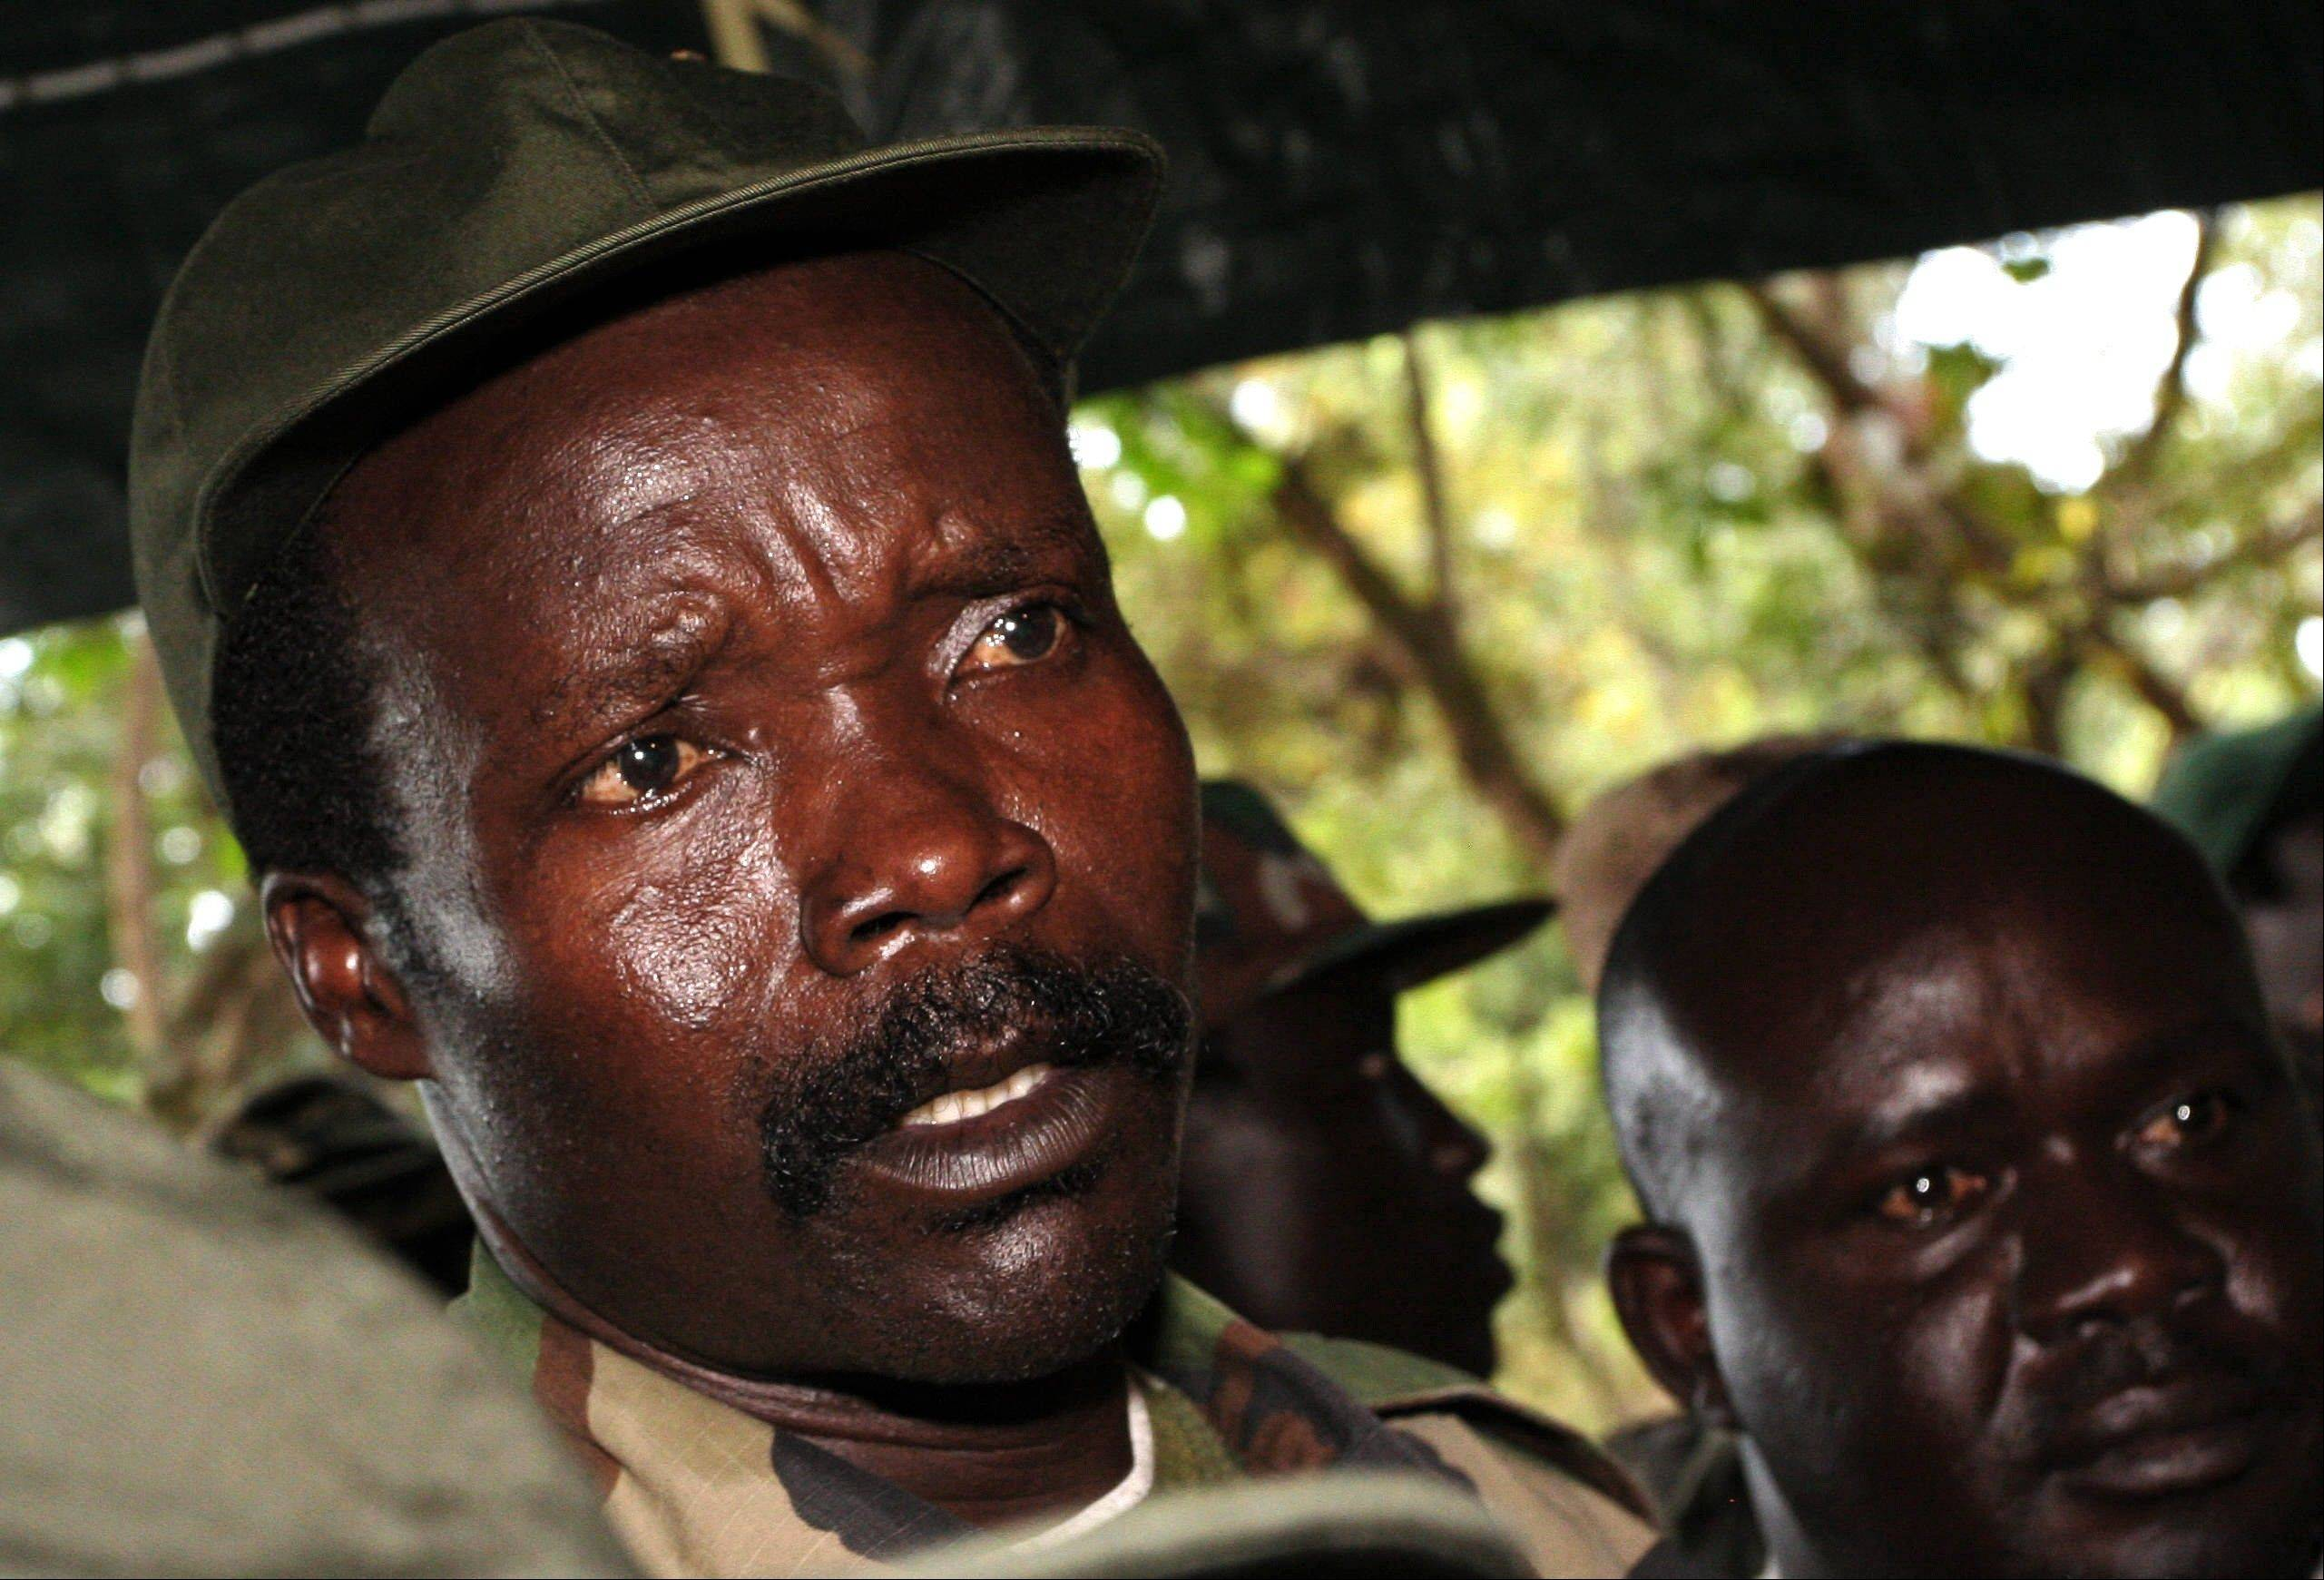 The leader of the Lord's Resistance Army Joseph Kony. Adventurer Robert Young Pelton, whose crowdfunding scheme has already drawn criticism from a pair of Africa experts, is the latest to join a line of private individuals and aid groups who are trying to corner Joseph Kony and the members of his Lord's Resistance Army.